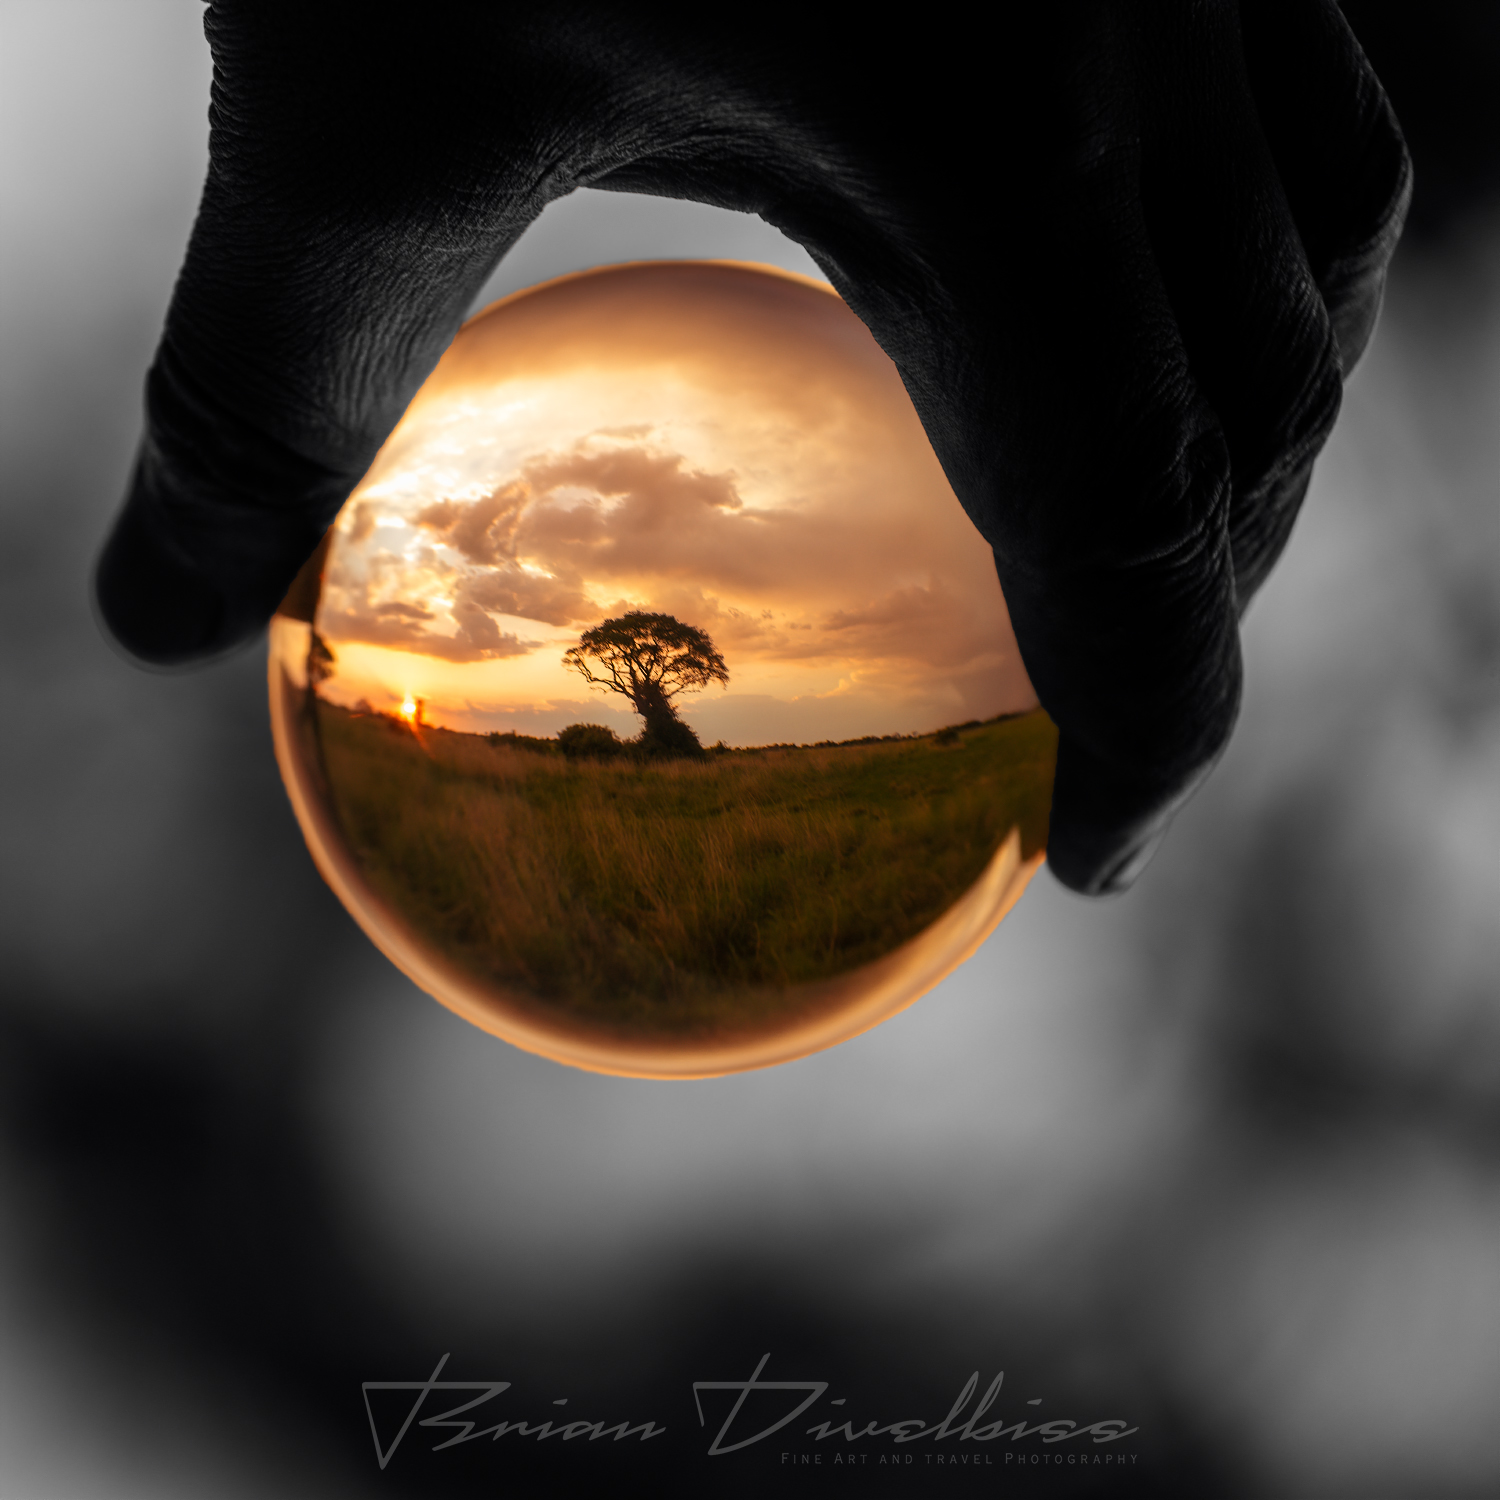 Lensball image of an Acacia tree silhouetted against the setting sun seen through a glass sphere.